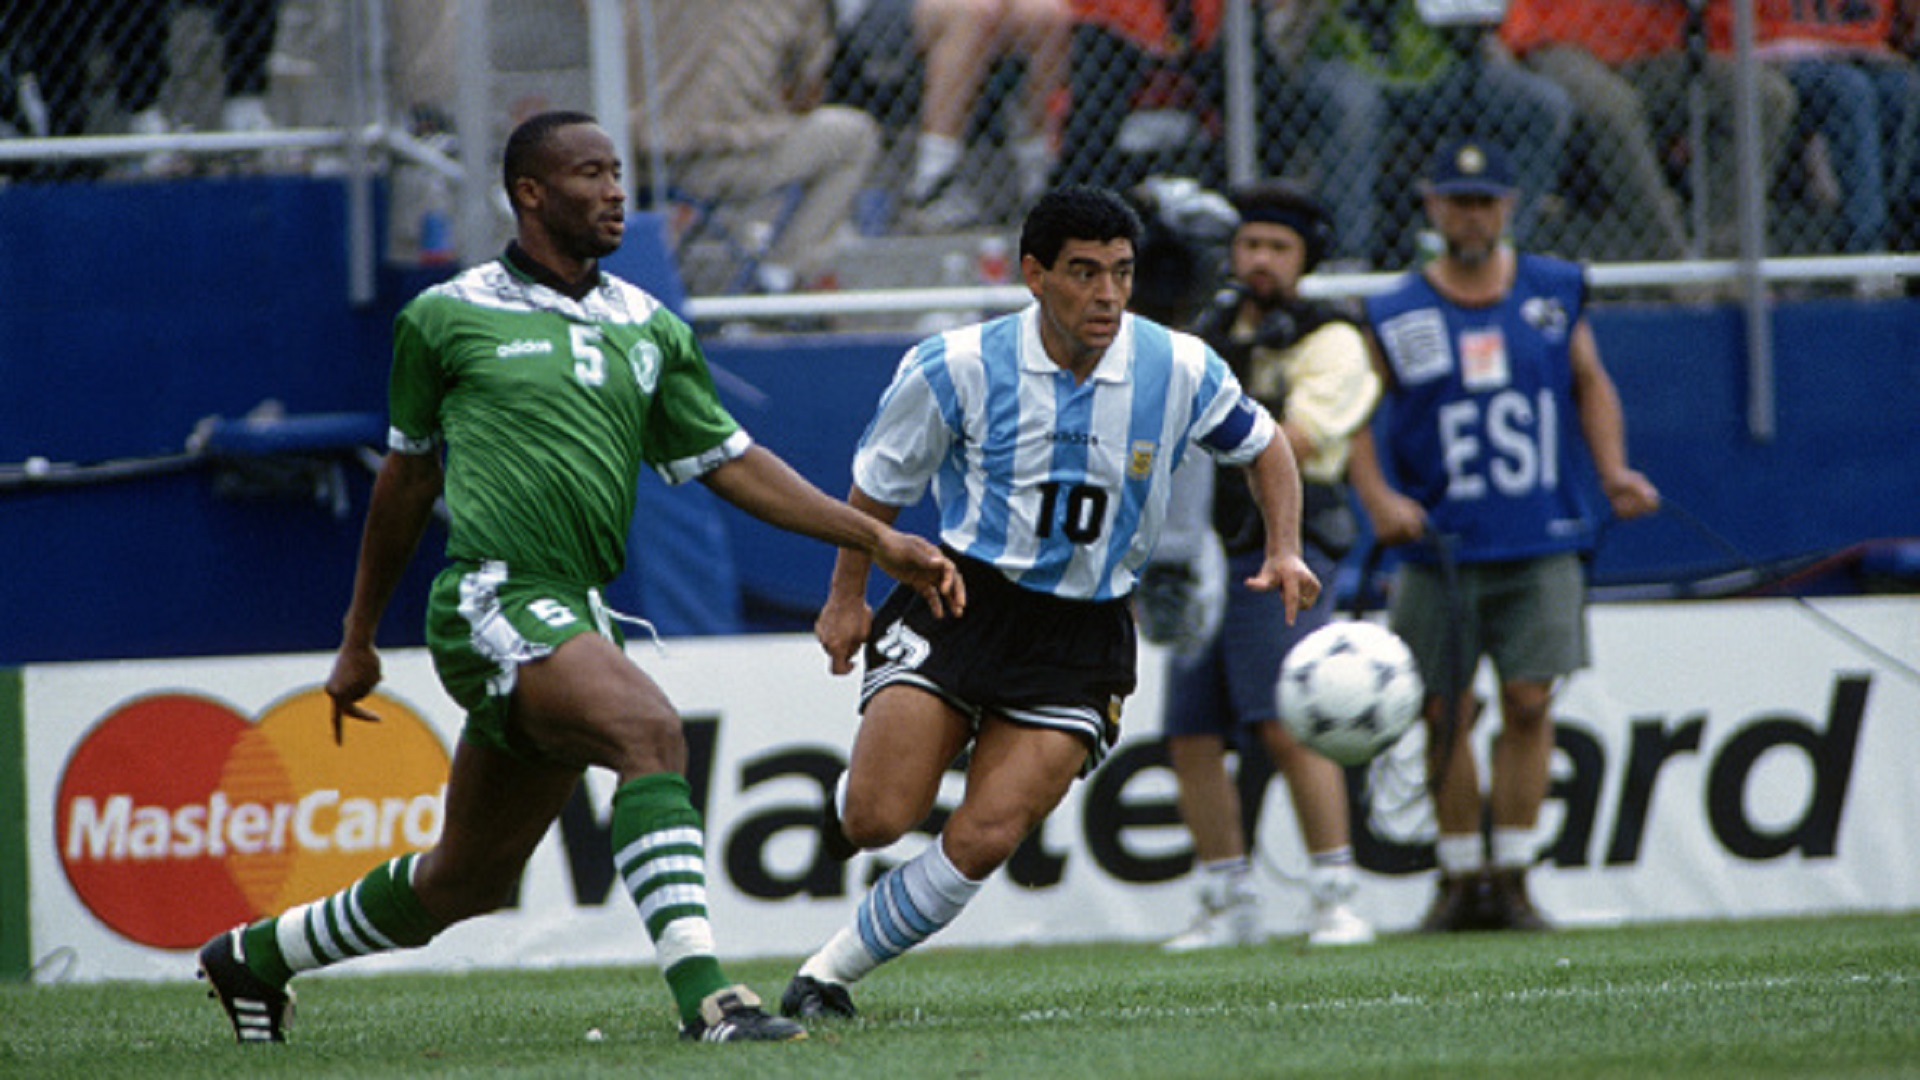 Argentina vs Nigeria at the 1994 World Cup Football Championships. Uche Okechukwu and Diego Maradona